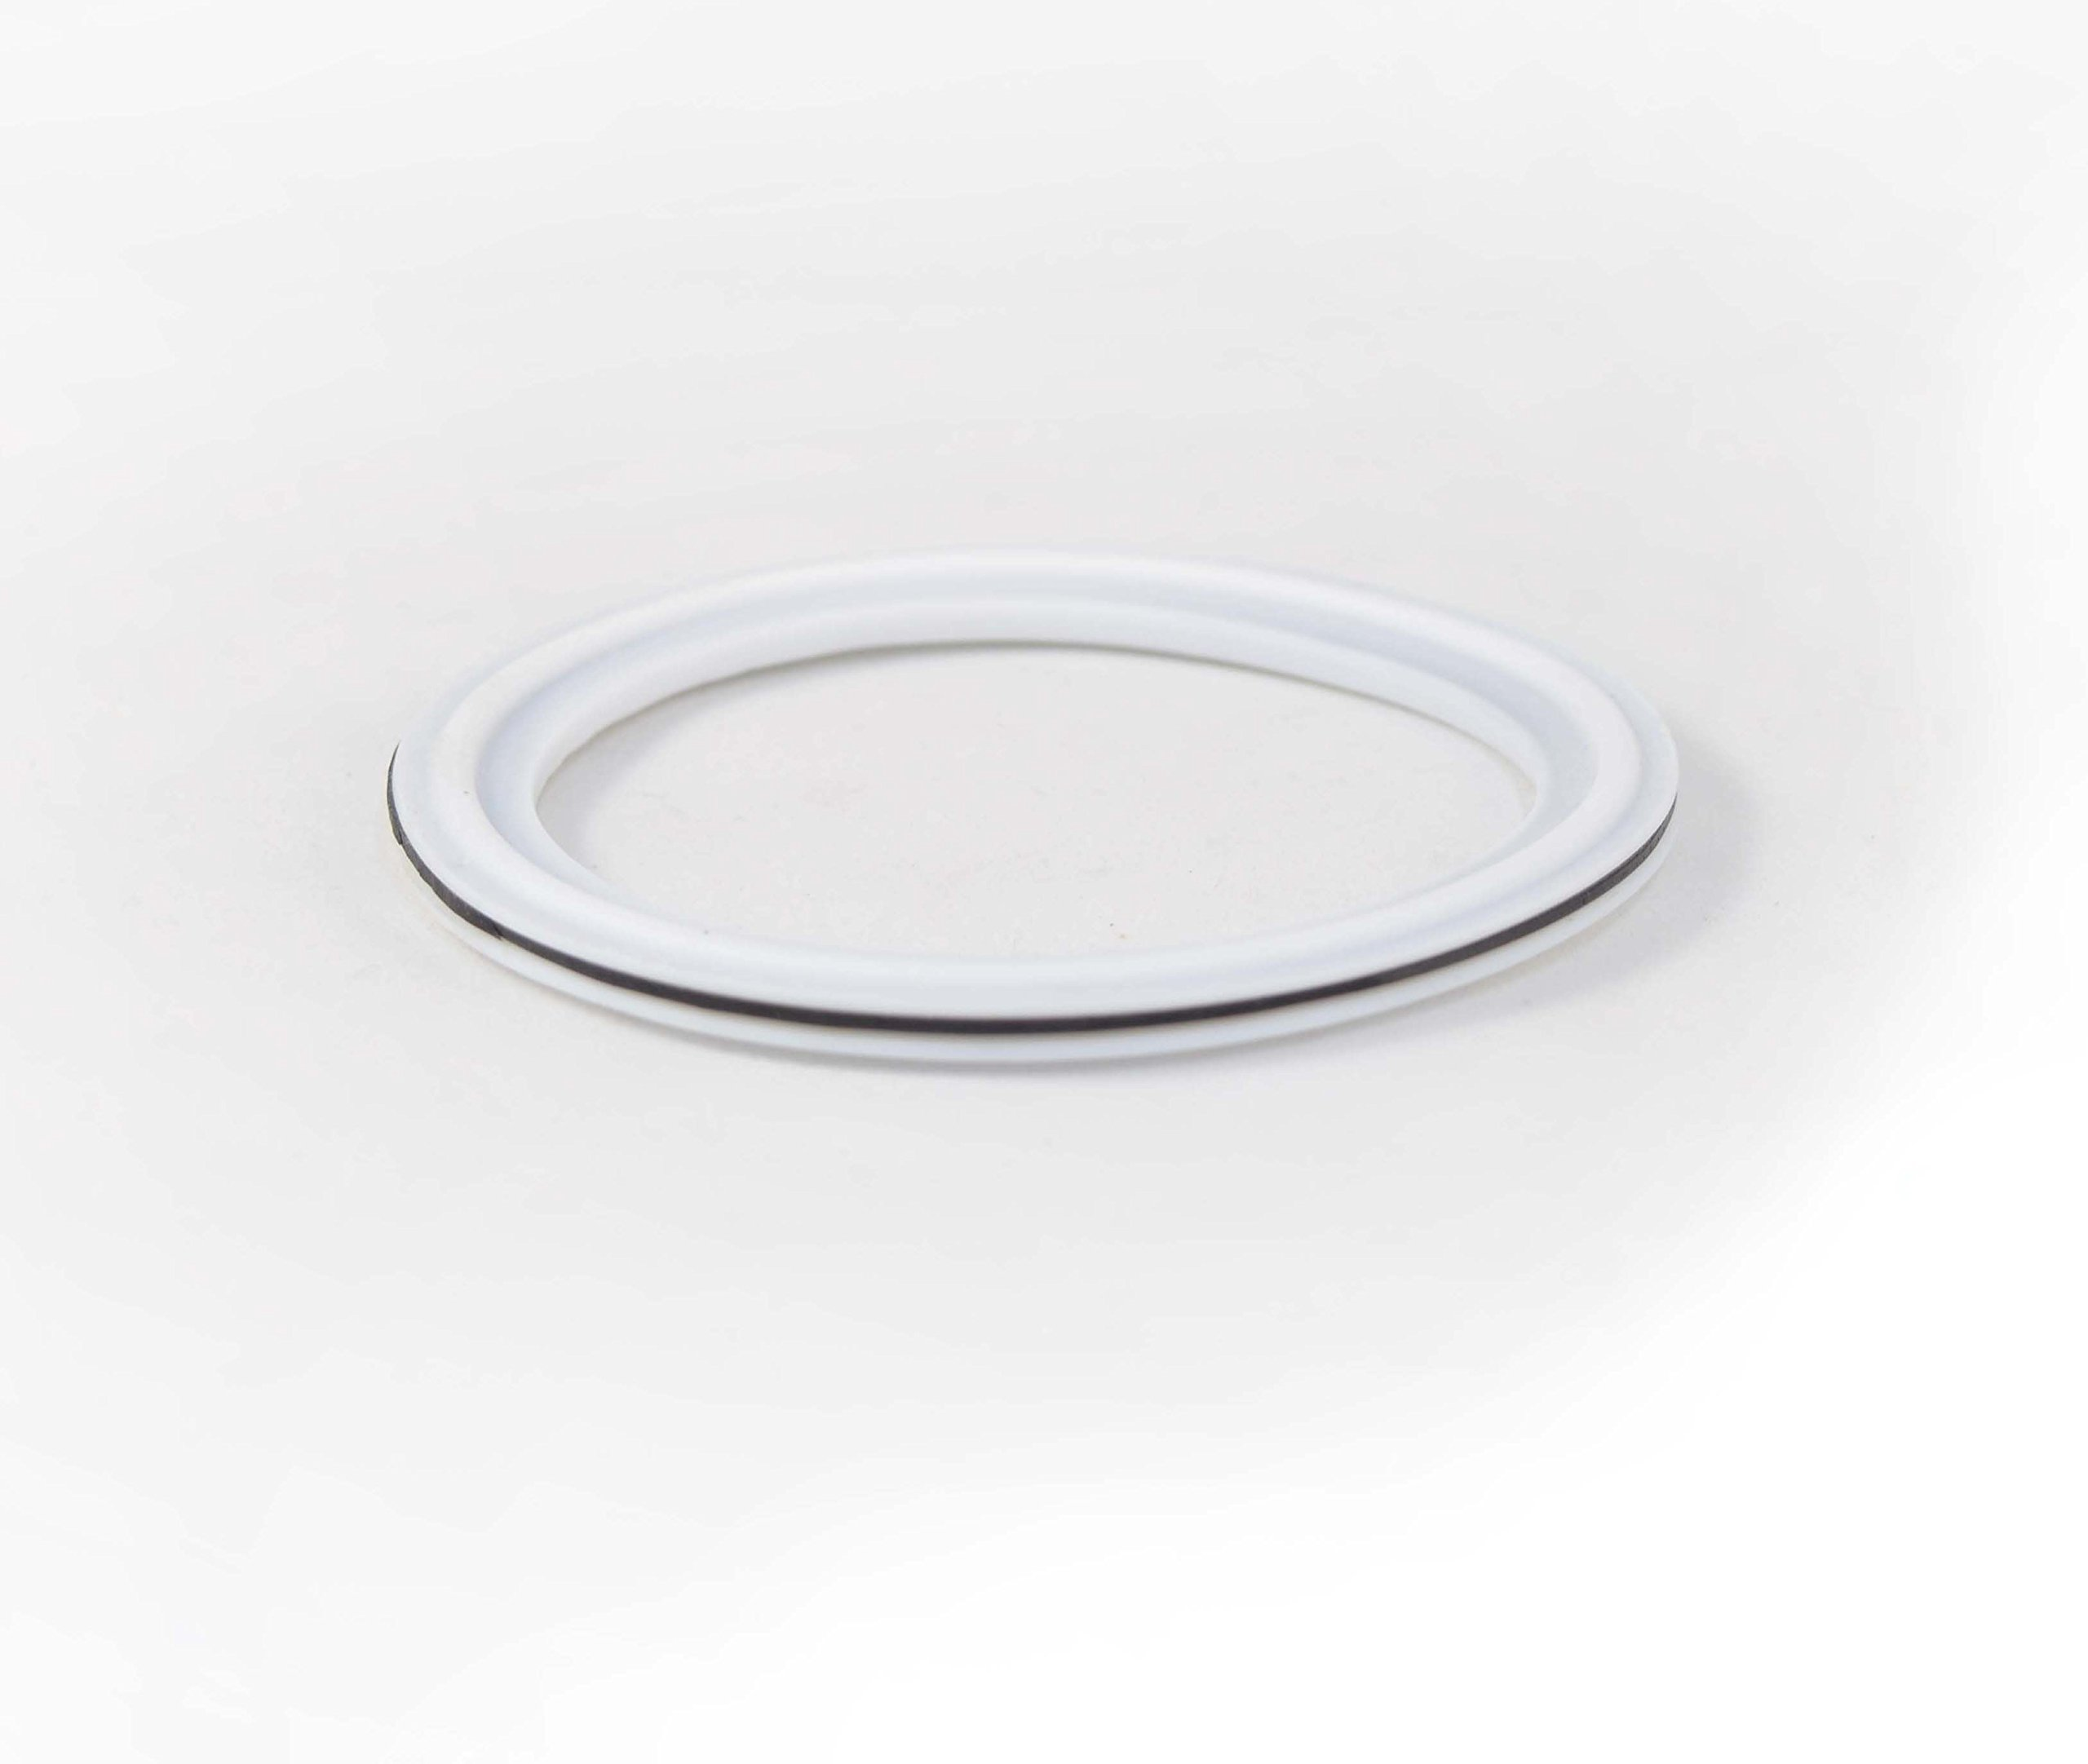 8'' Tri Clamp Envelope Gasket PTFE (Teflon) PTFE X EPDM Sanitary Pharmaceutical Grade High Elasticity VS PTFE Alone! IE Longer Life. FDA Certifications Provided For Both Materials by ARTESIAN SYSTEMS